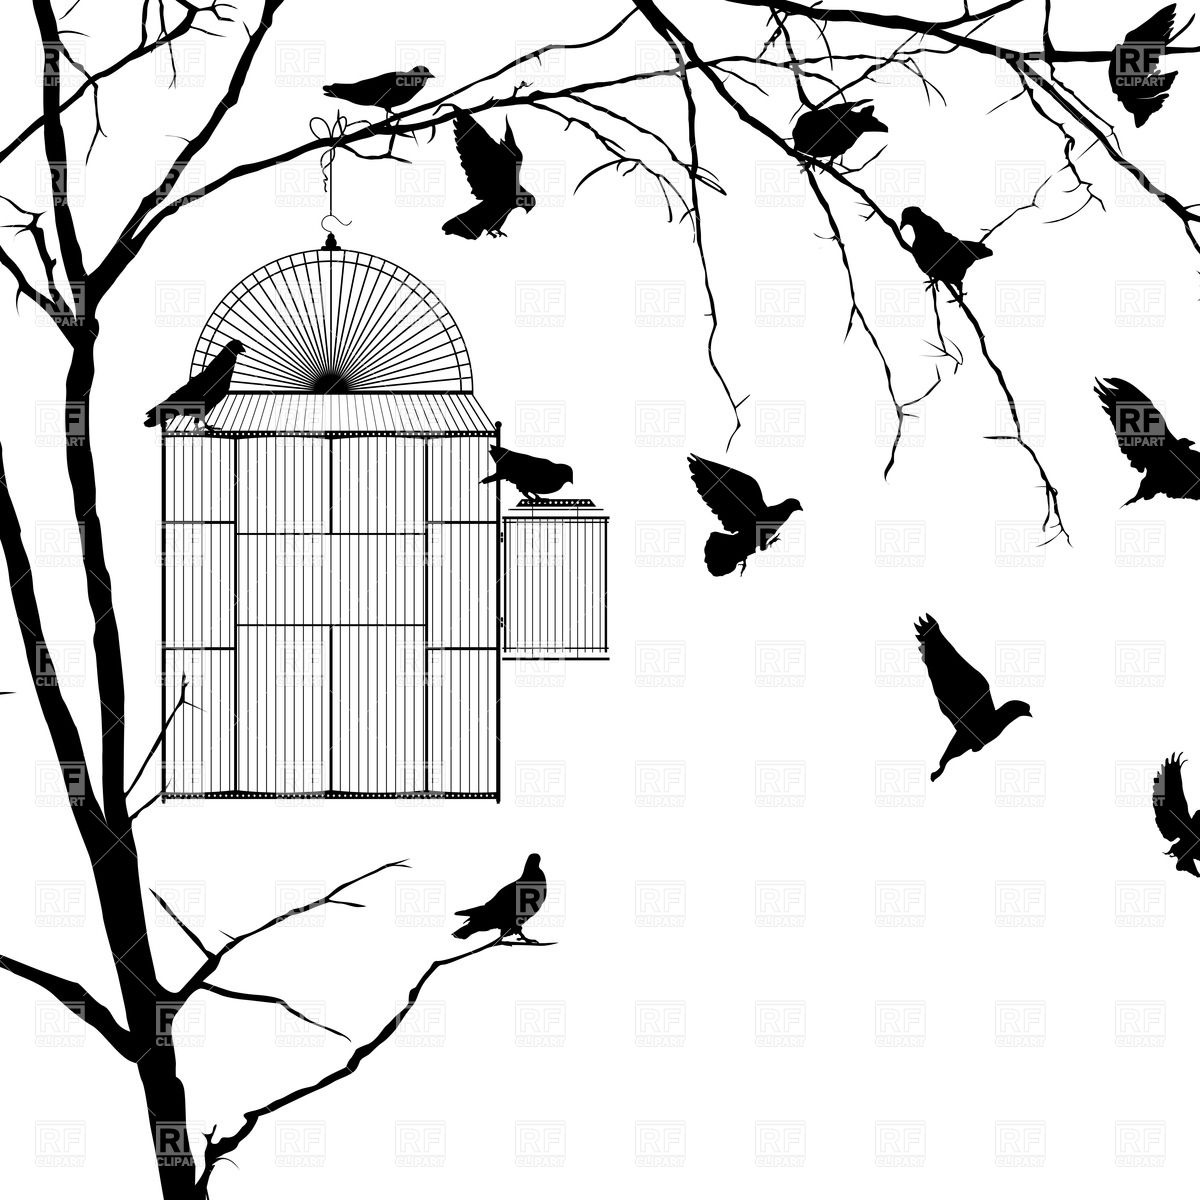 1200x1200 Silhouettes Of Birds And Open Cage On The Branch Royalty Free